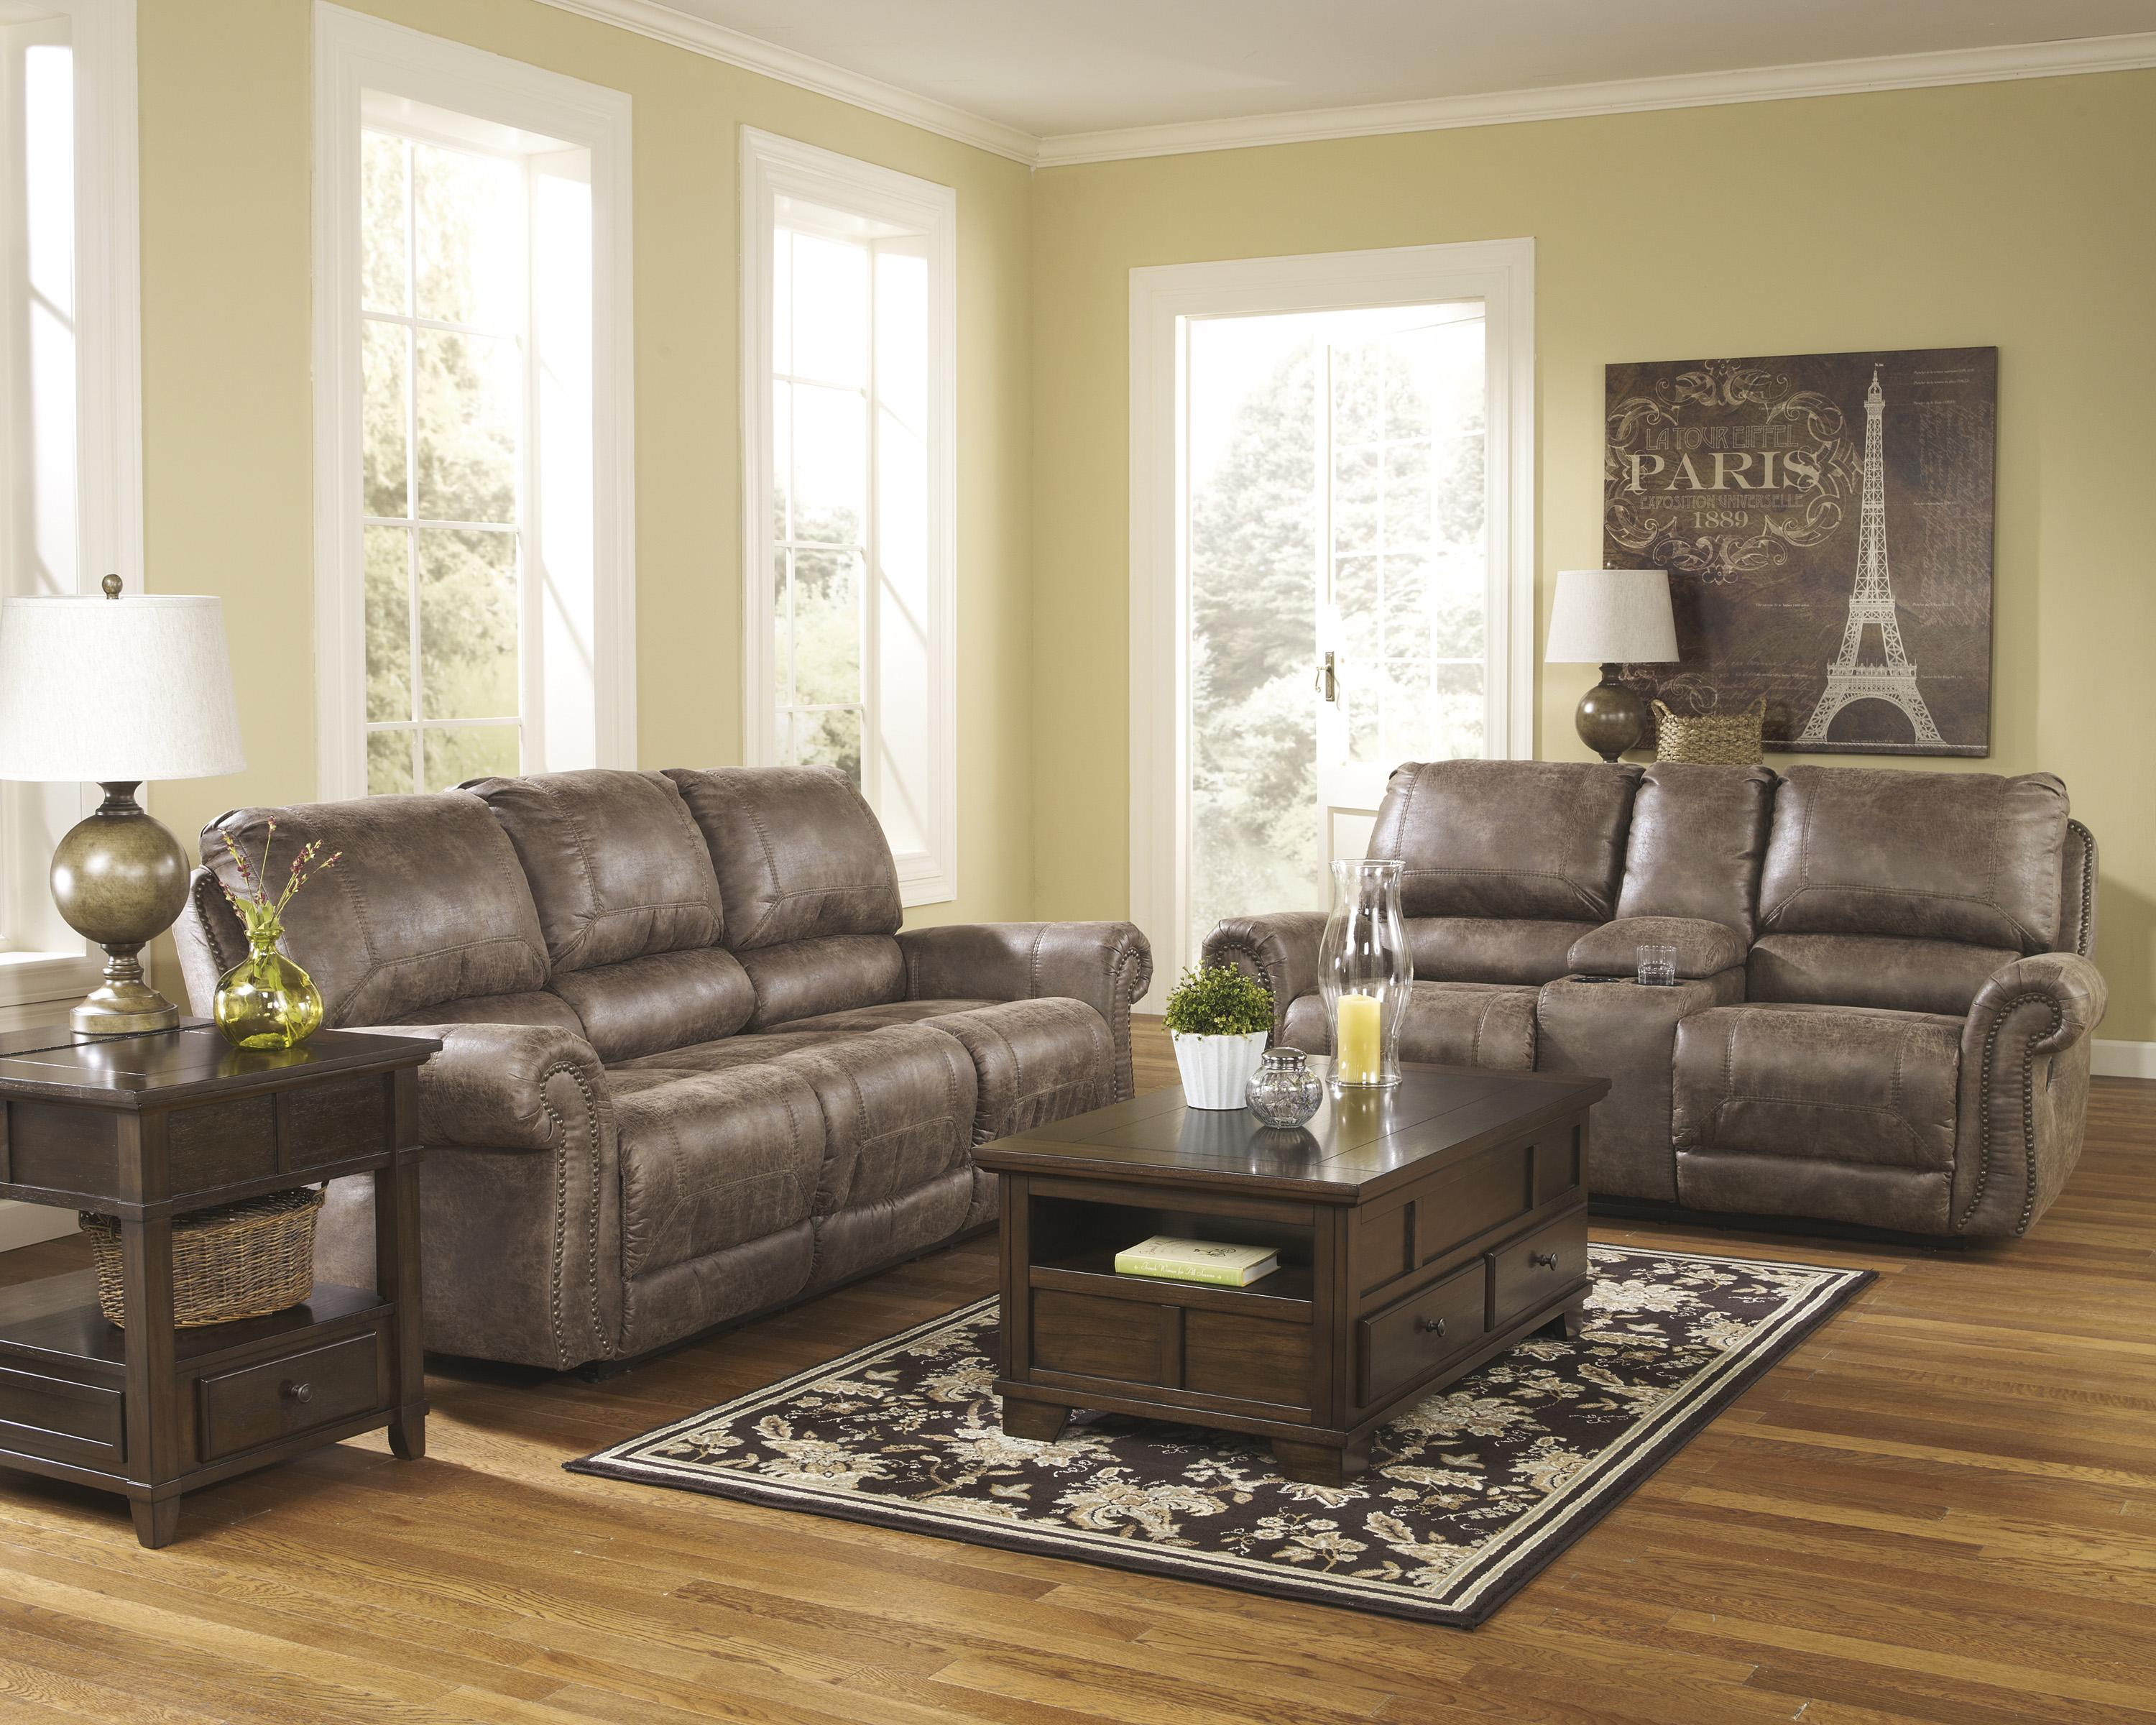 Signature Design by Ashley Oberson - Gunsmoke Reclining Living Room Group - Item Number: 74100 Living Room Group 1